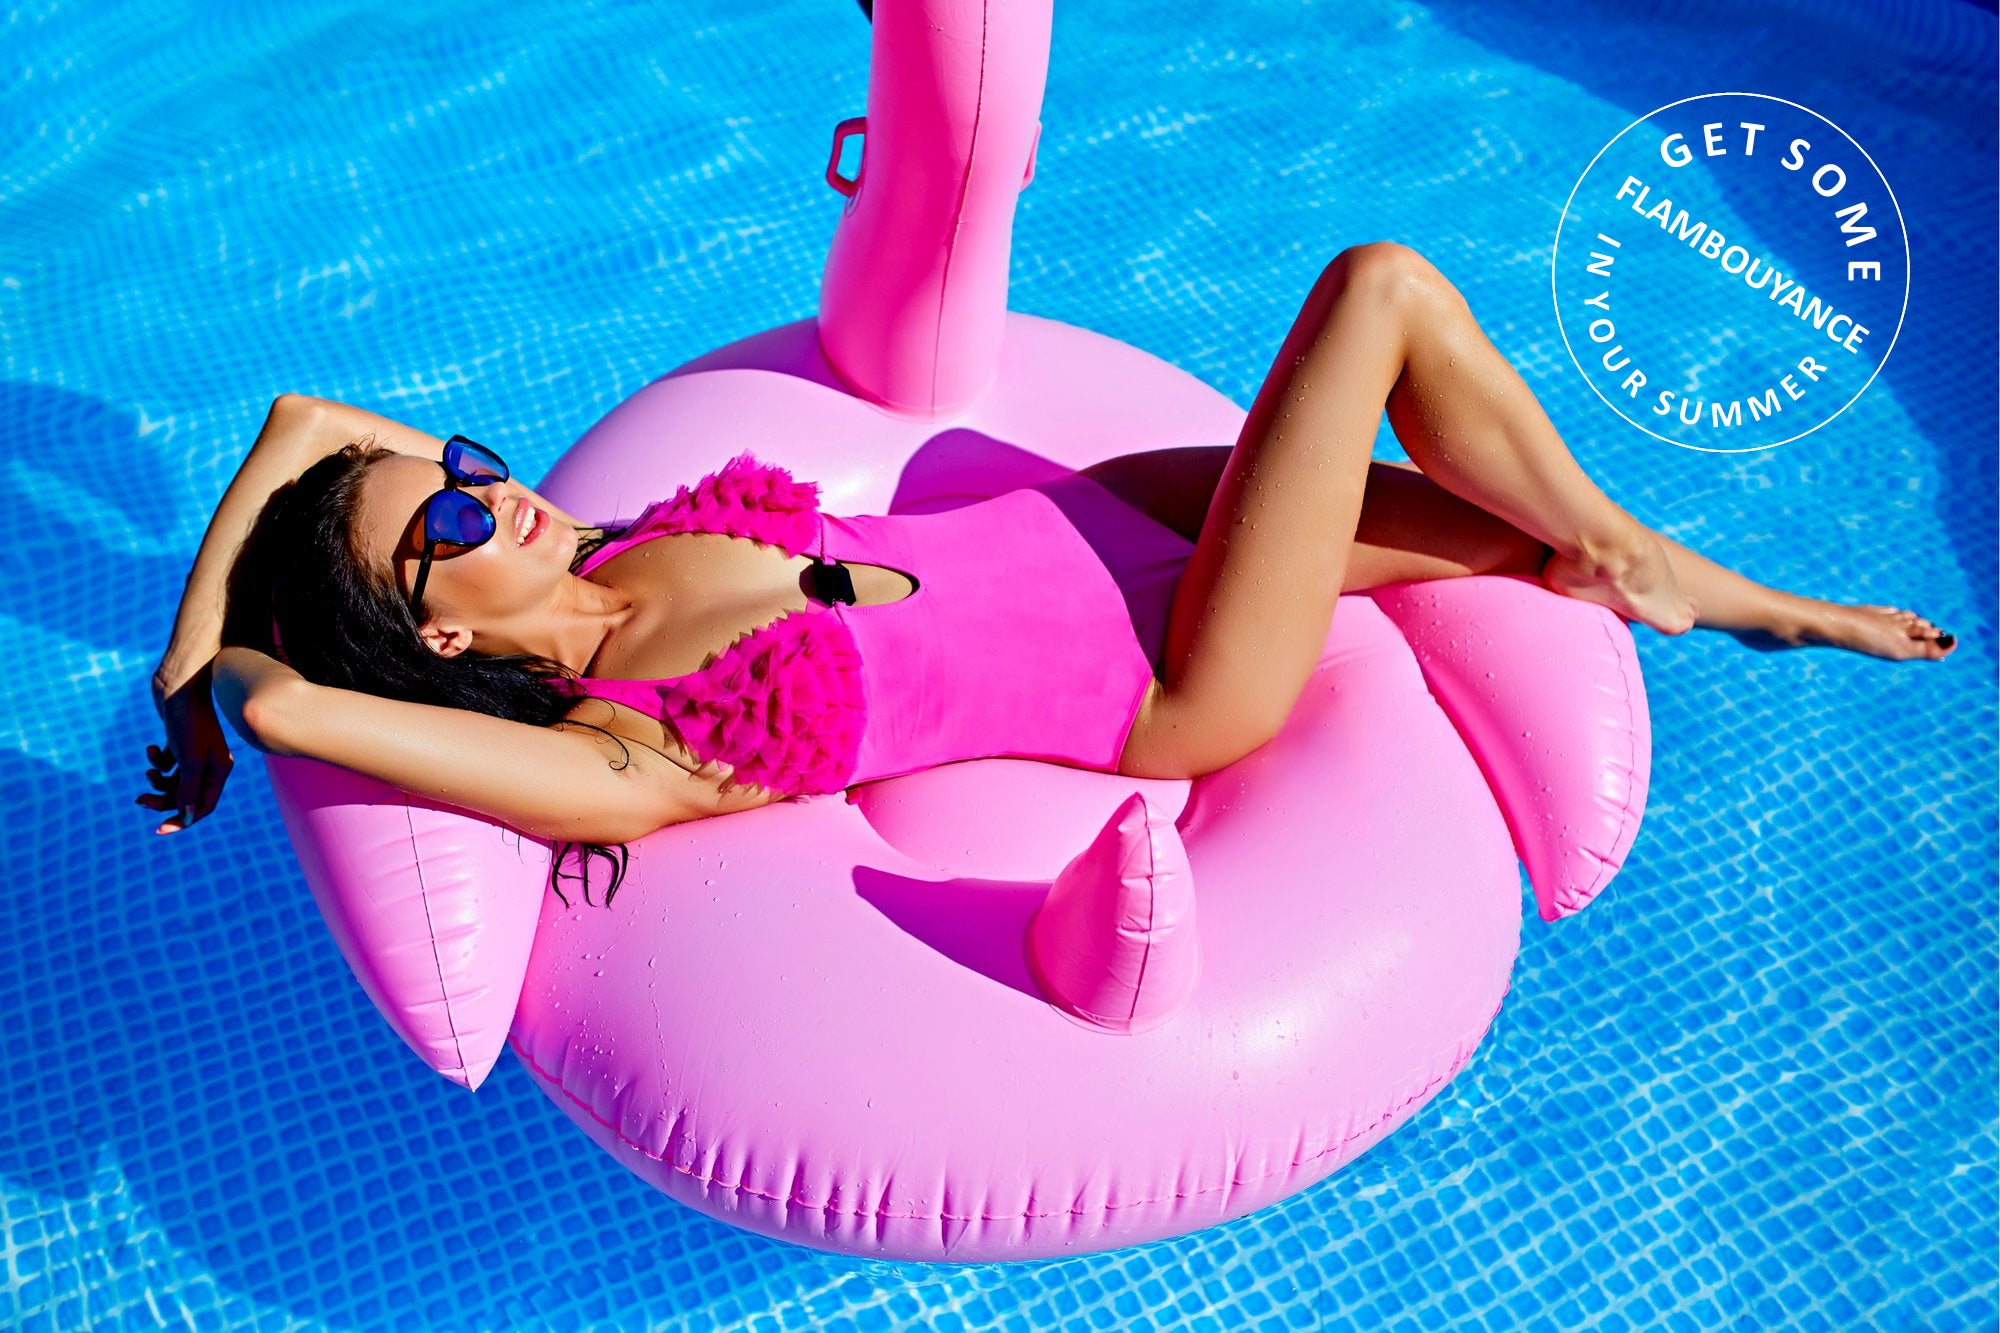 The Pink Flamingo white swan inflatable pool toys and floats